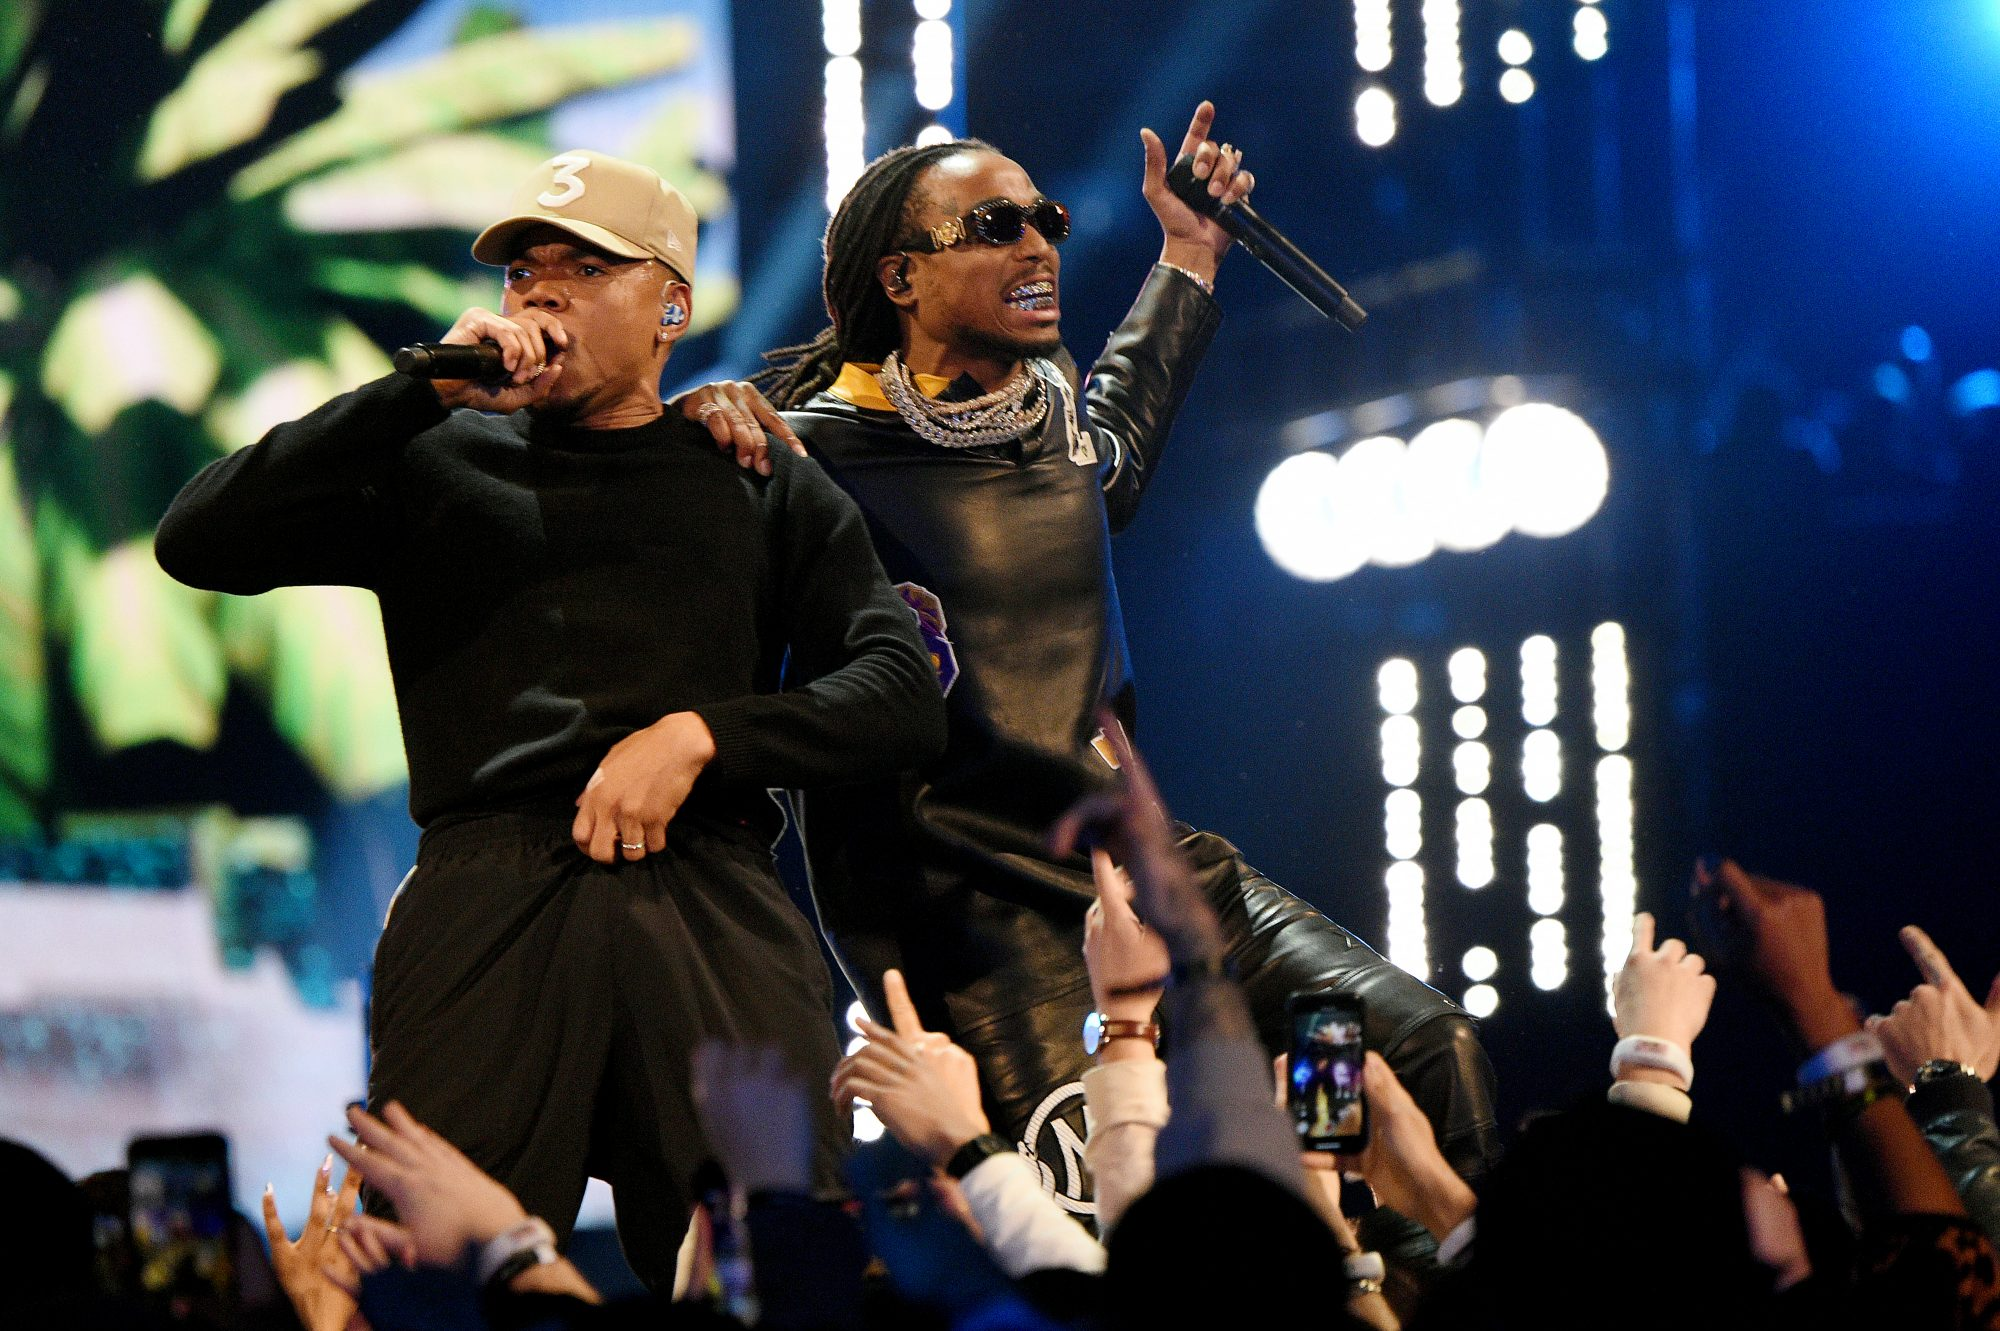 chance the rapper and quavo